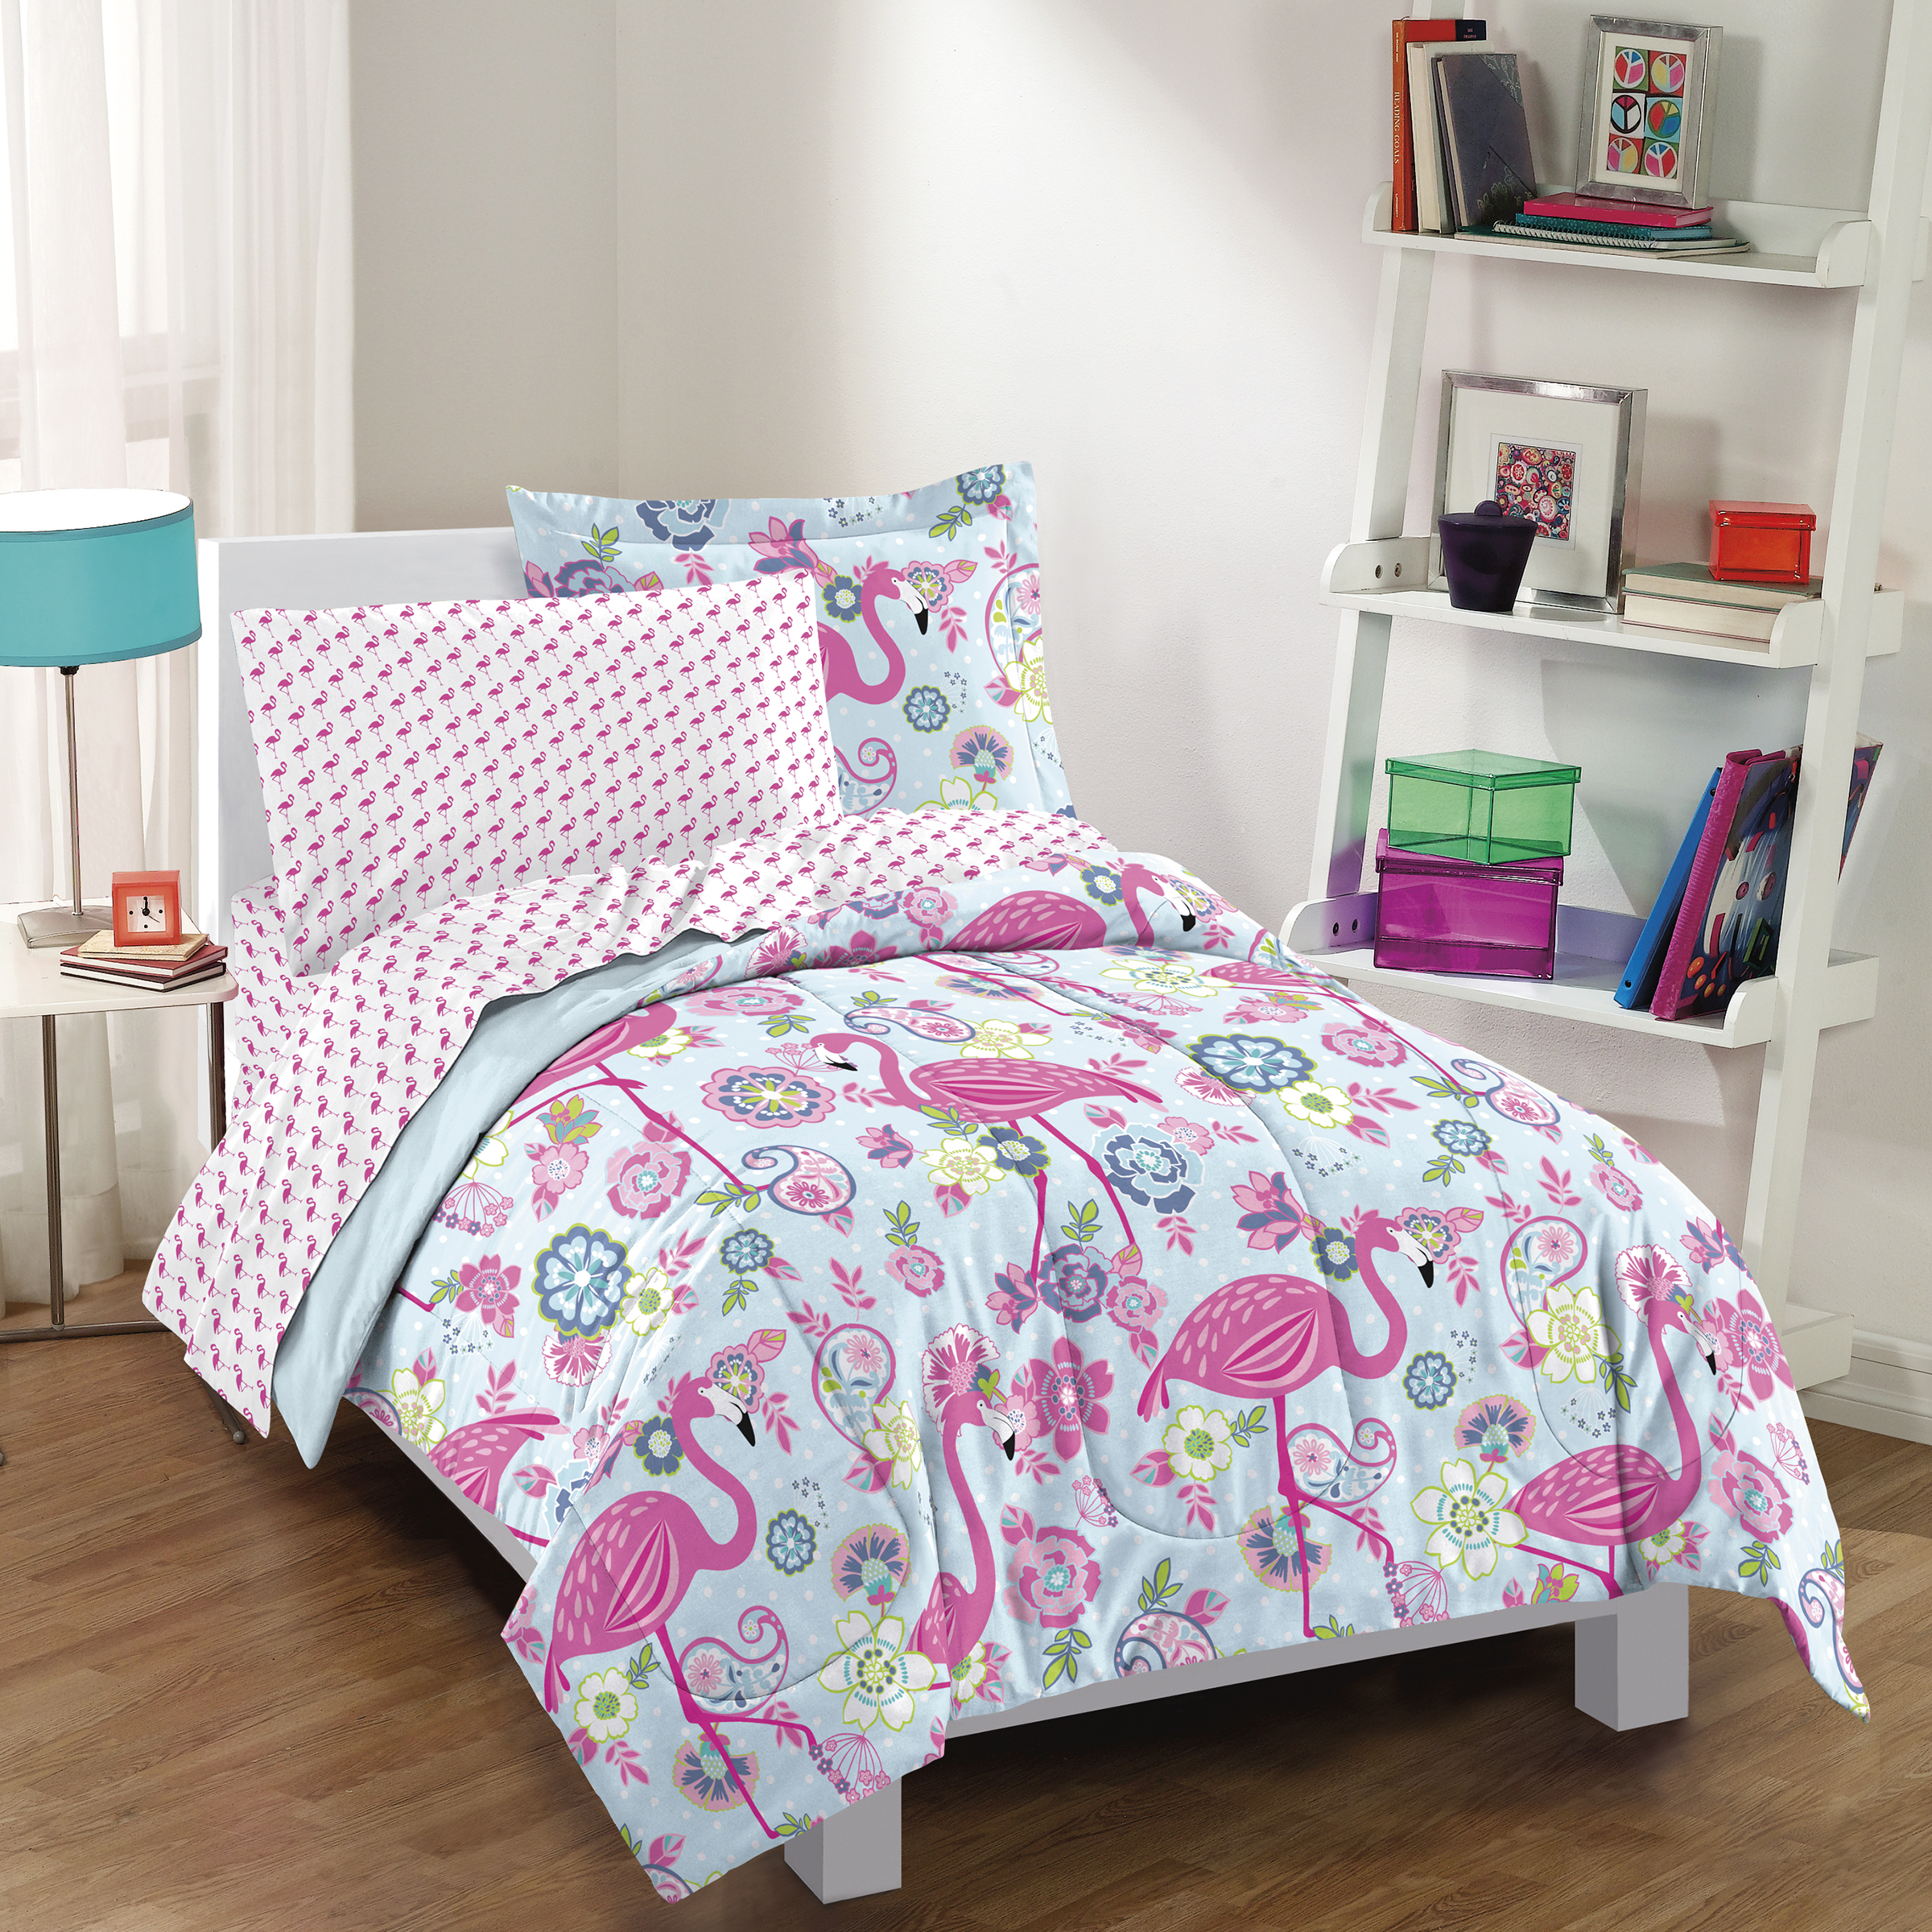 Details About NEW Flamingo Pink Girls Full Bedding Set Kids Teen Comforter  Sheets